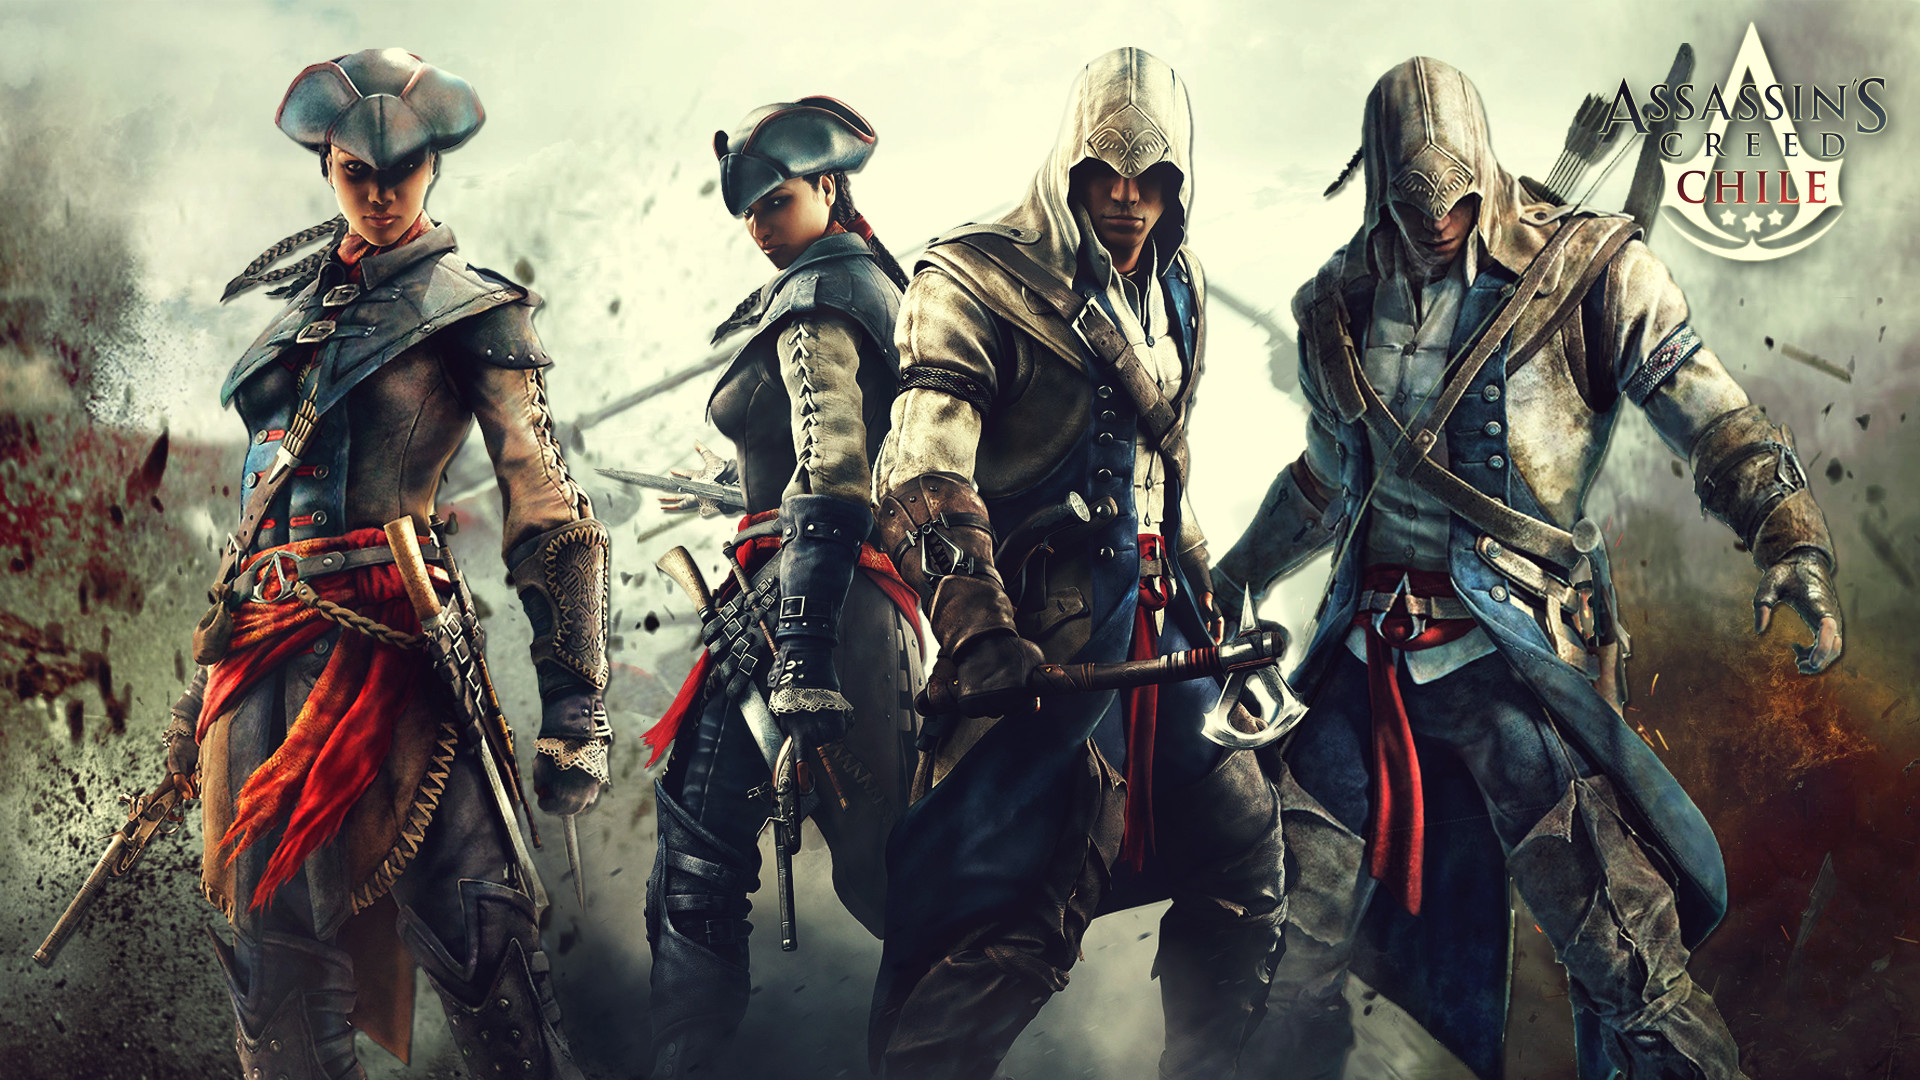 1920x1080 Assassin's Creed 3 Wallpaper Mac | Assassins creed wallpaper | Assassins  creed Story | #20